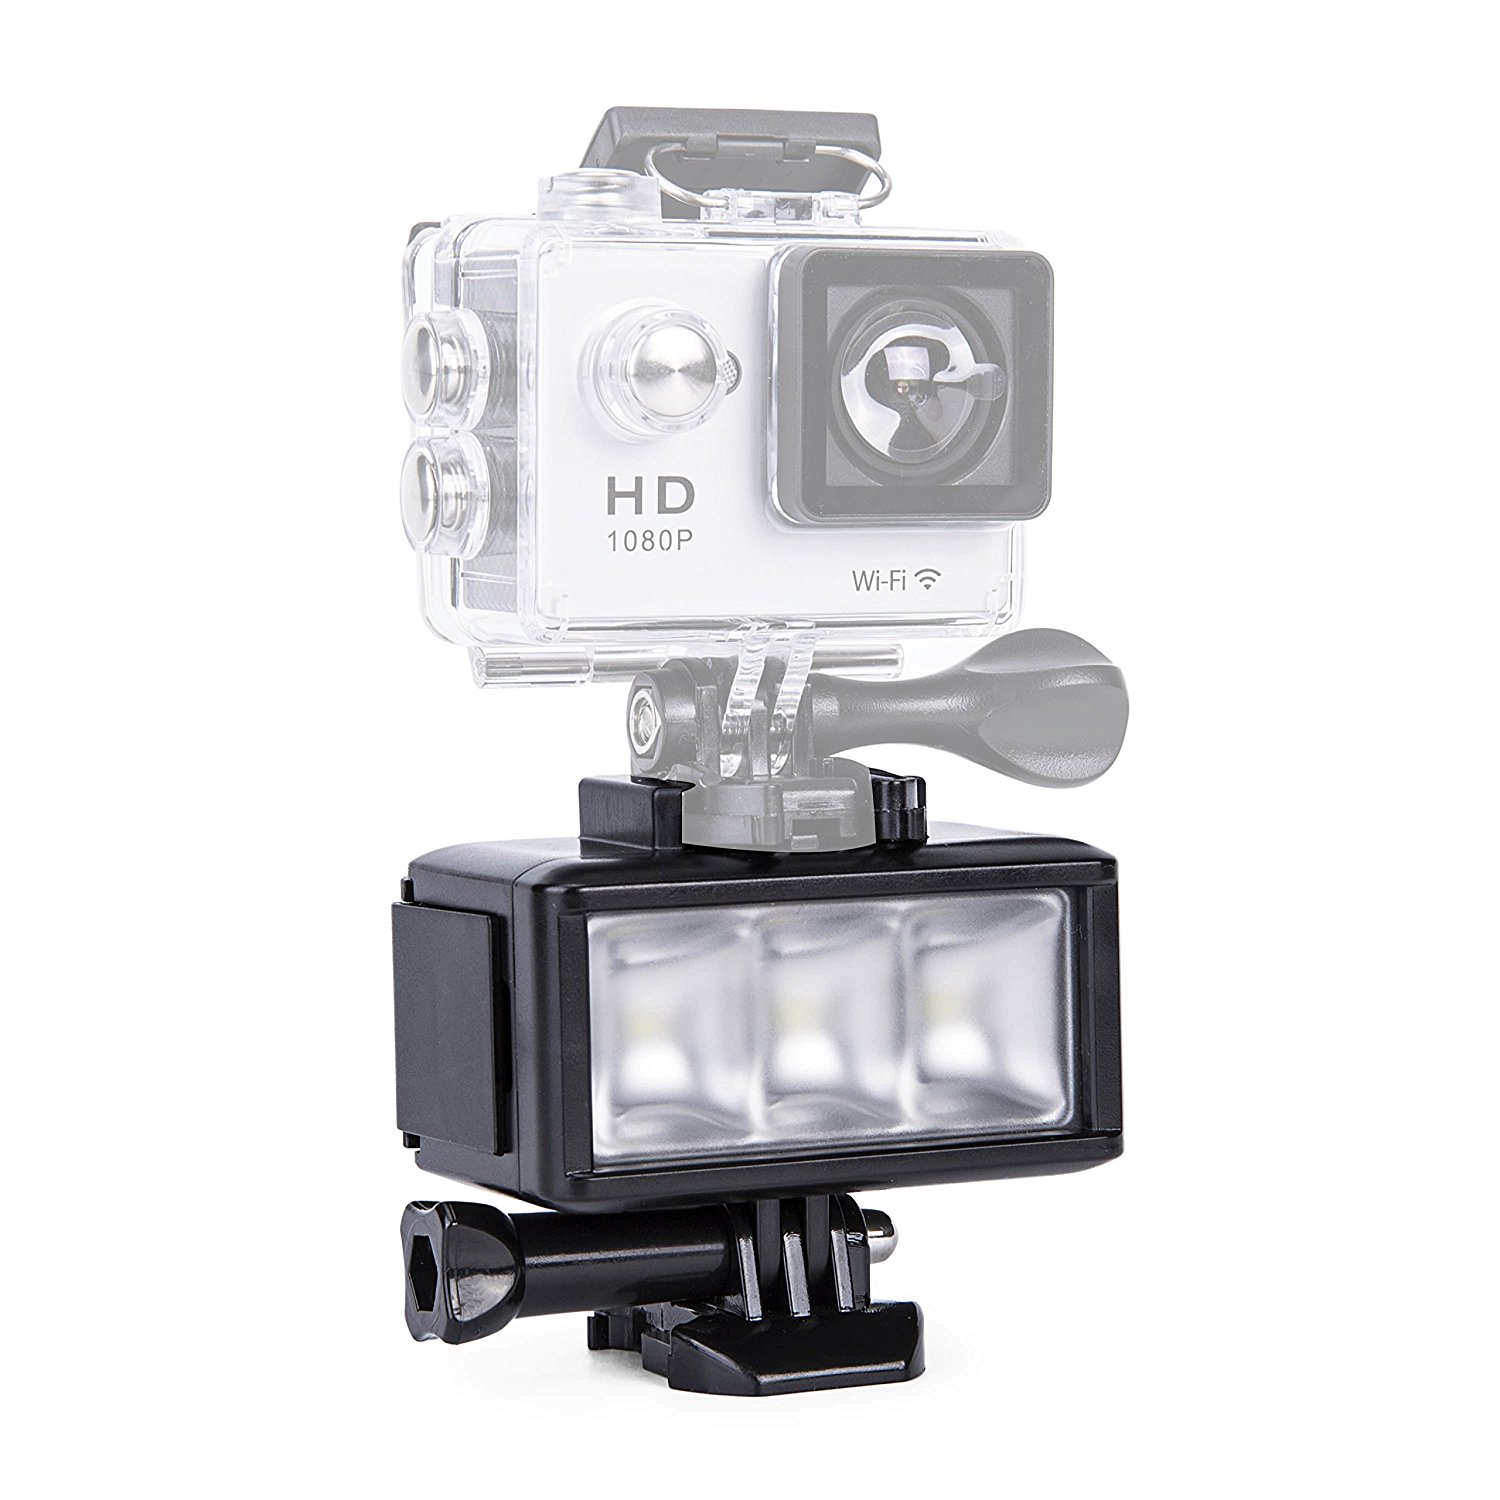 G-raphy Waterproof Underwater Diving LED Video Light High Power Dimmable for Gopro Hero 5 5S 4 4S 3+ 3 2 SJCAM SJ4000 SJ5000 Xiaomi Yi Sports Action Camera with 1000mAh Built-in Rechargeale Battery